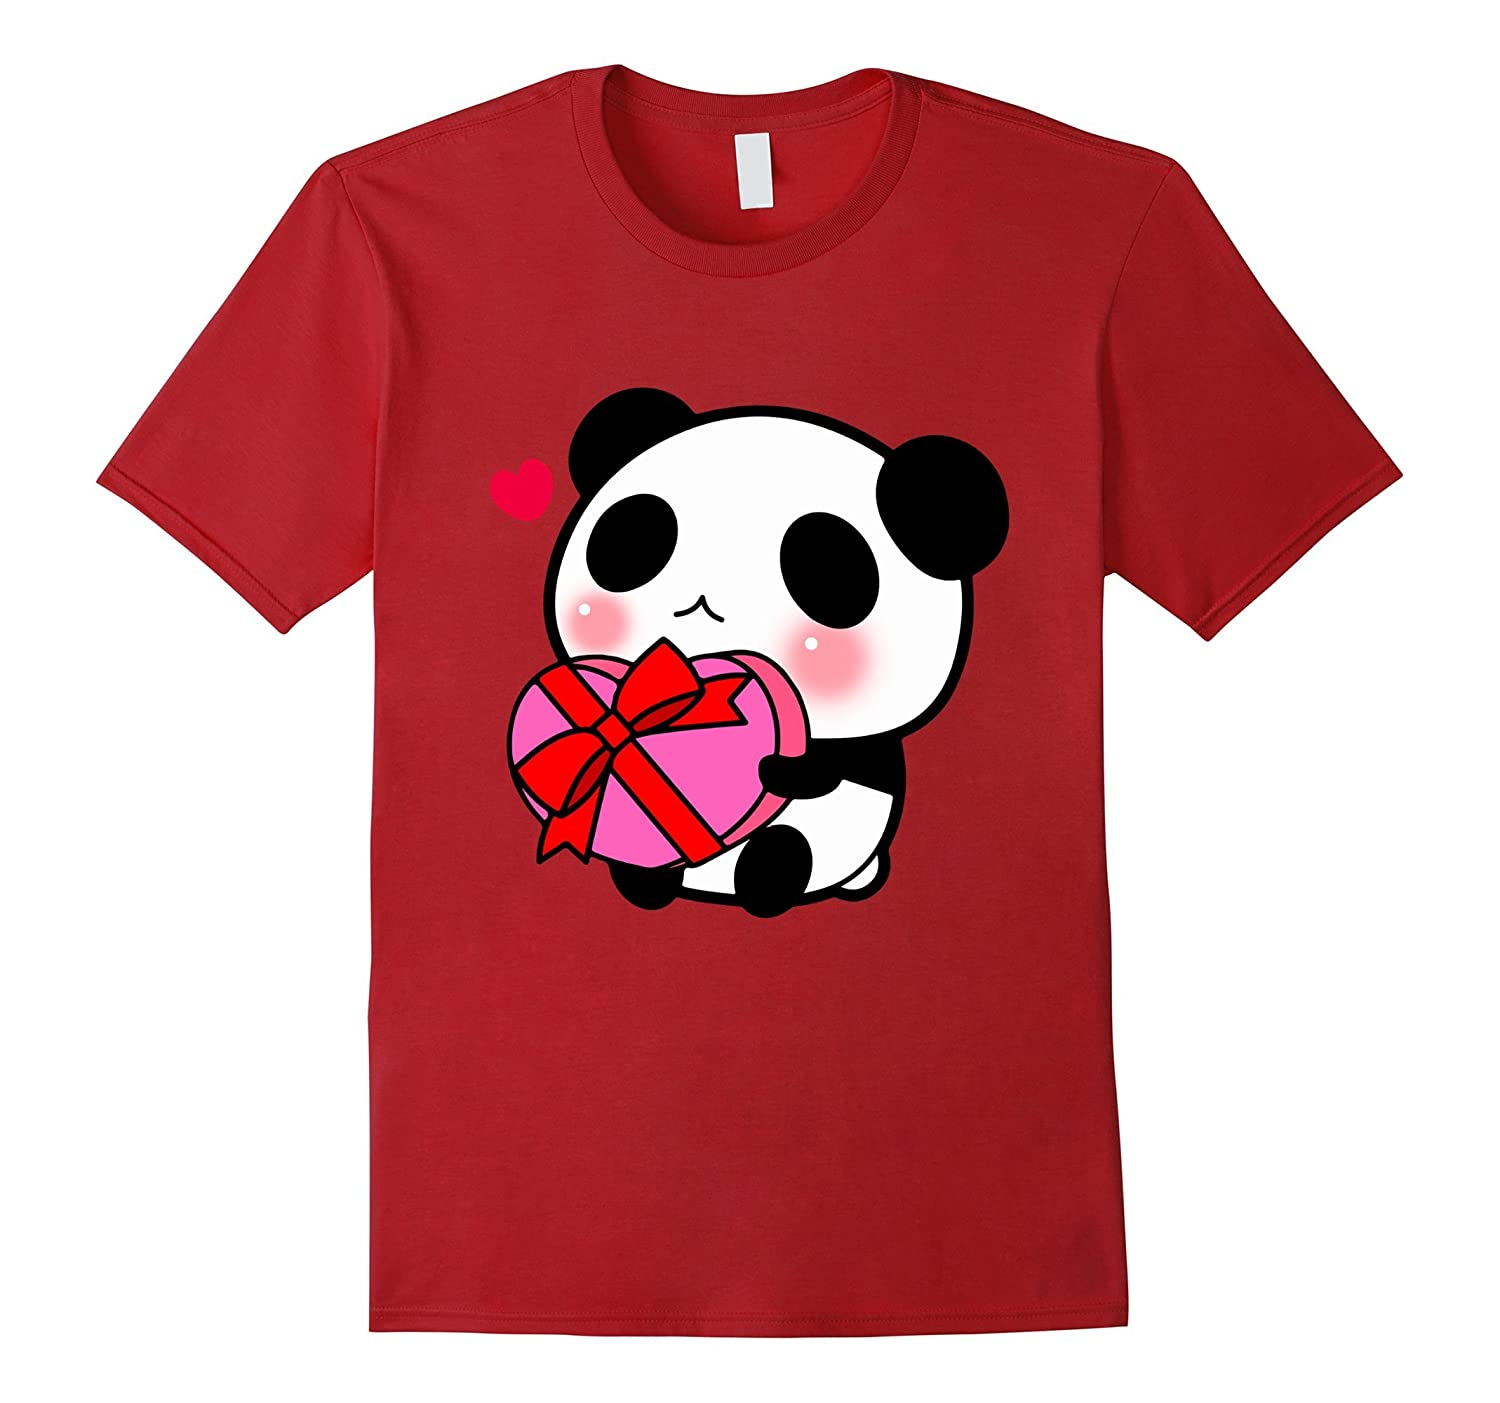 Cute Panda Red Heart Gift T-Shirt Valentine Pink Gift Blush-CL